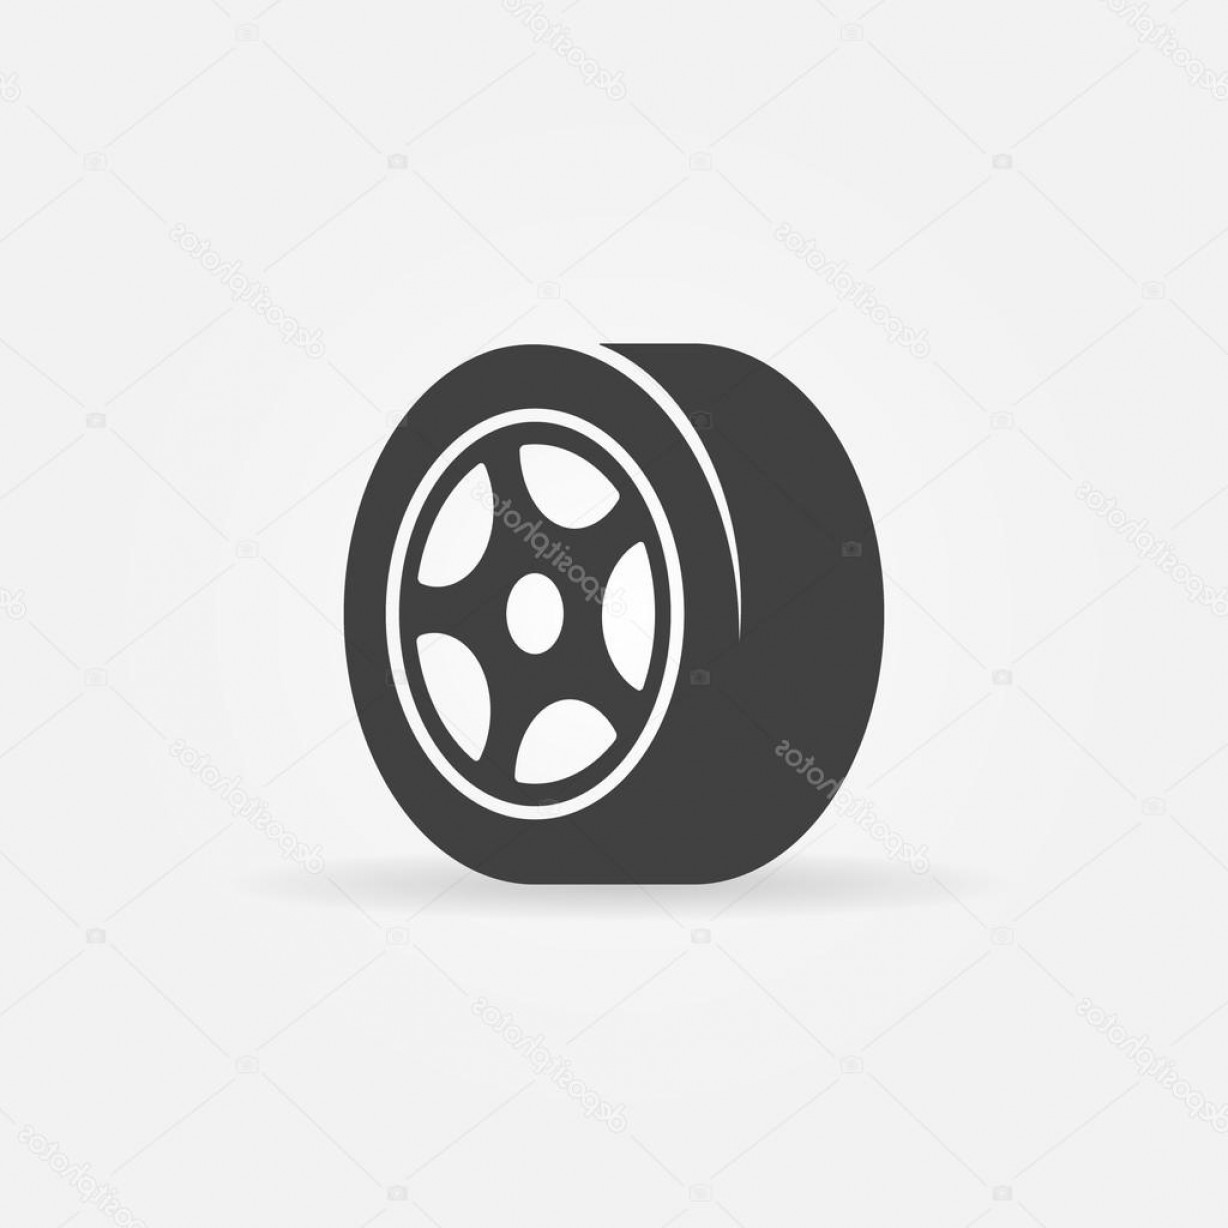 Tire Icon Vector: Stock Illustration Tyre Black Symbol Or Icon